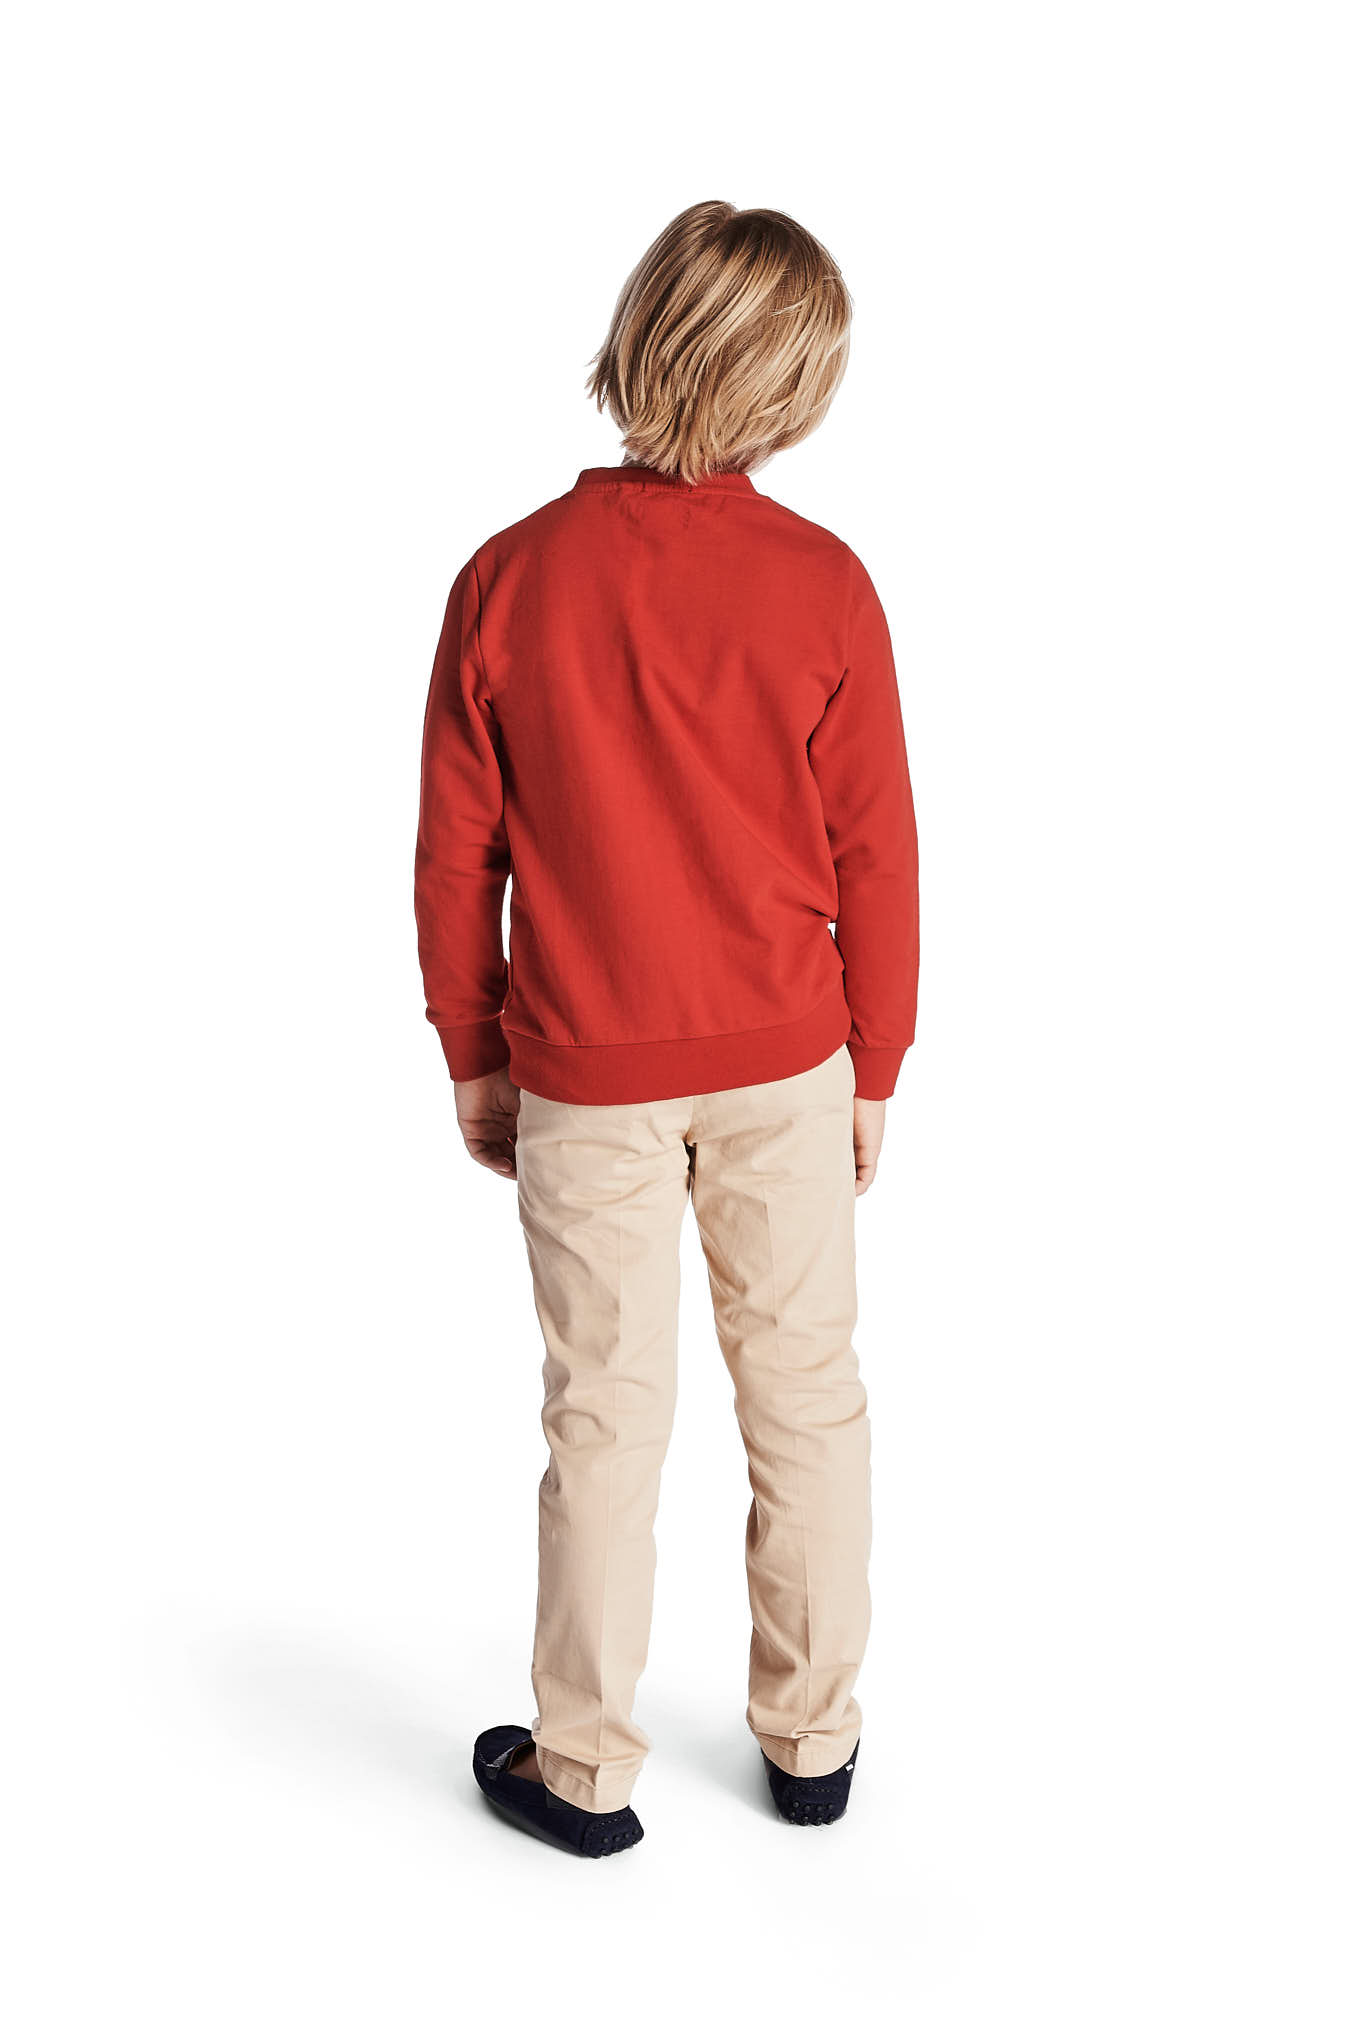 Sweatshirt Red Sport Boy